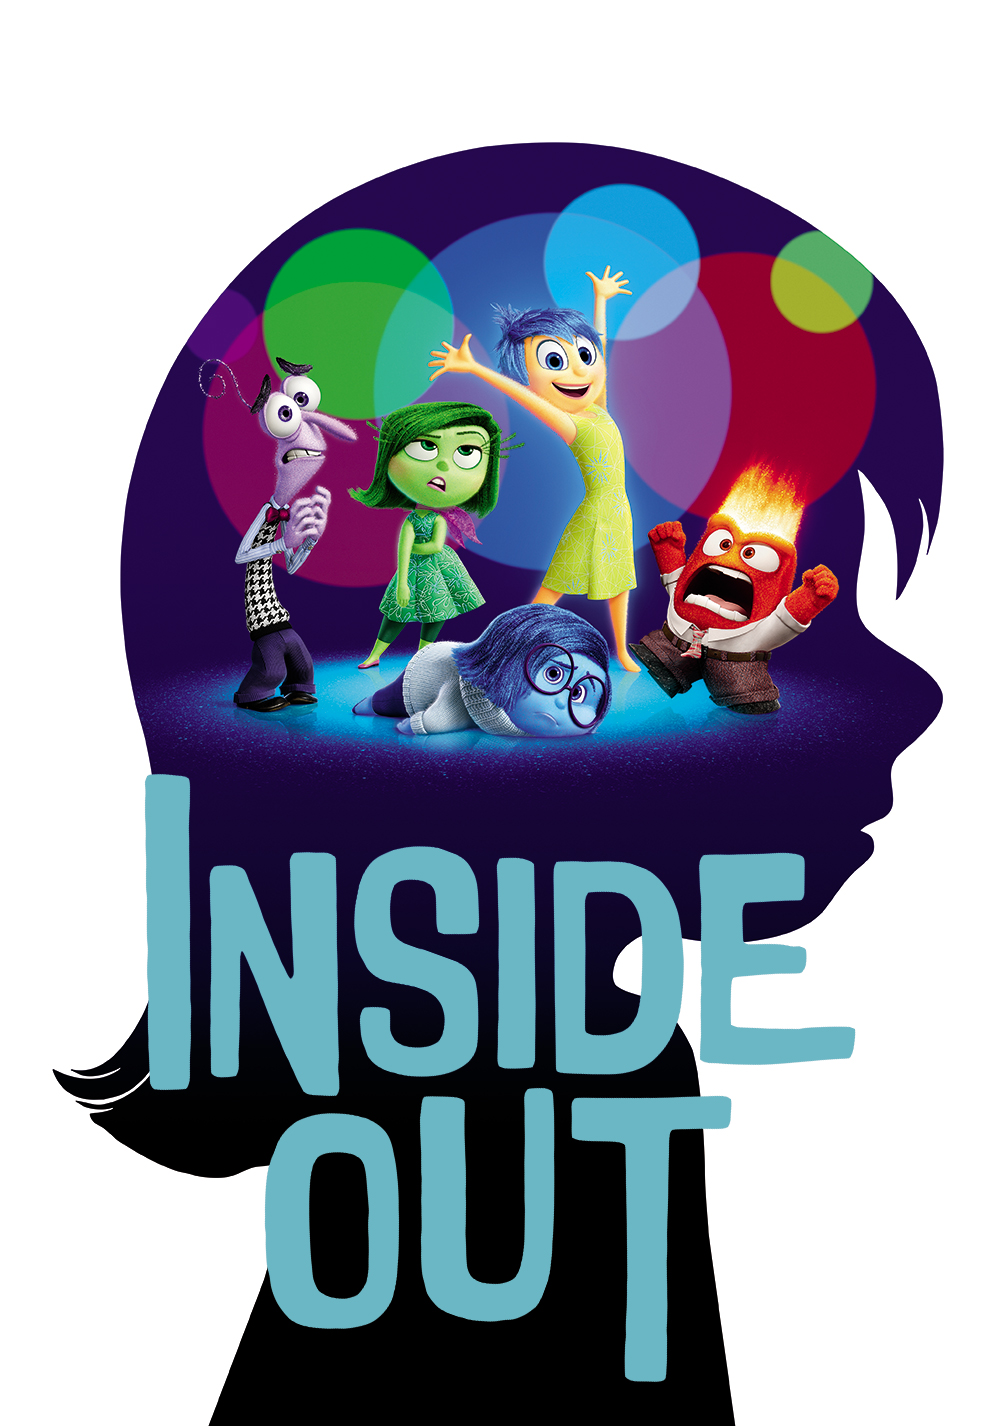 inside-out-head